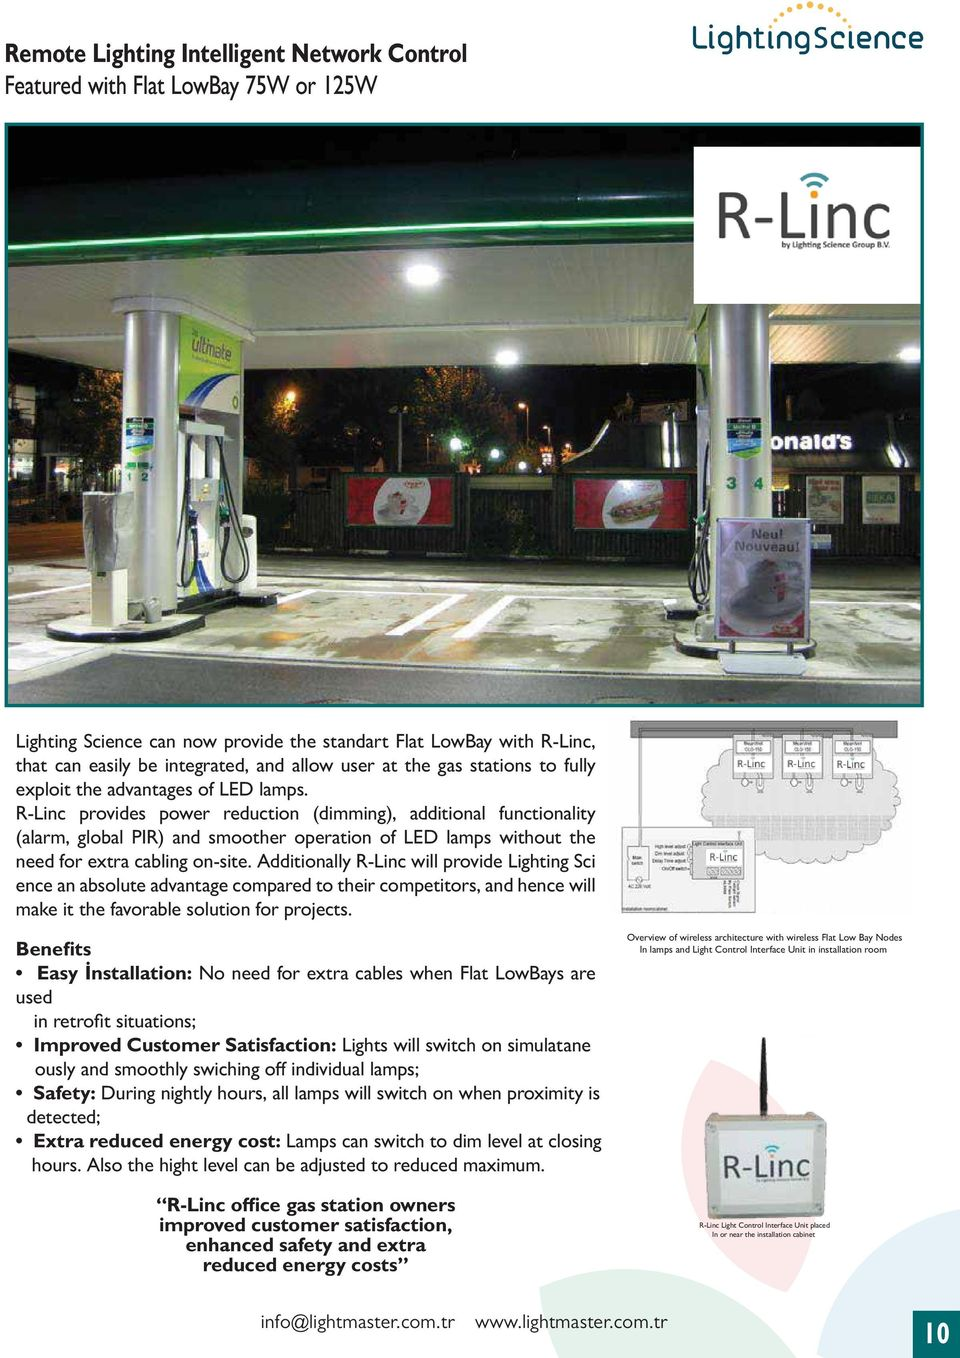 R-Linc provides power reduction (dimming), additional functionality (alarm, global PIR) and smoother operation of LED lamps without the need for extra cabling on-site.